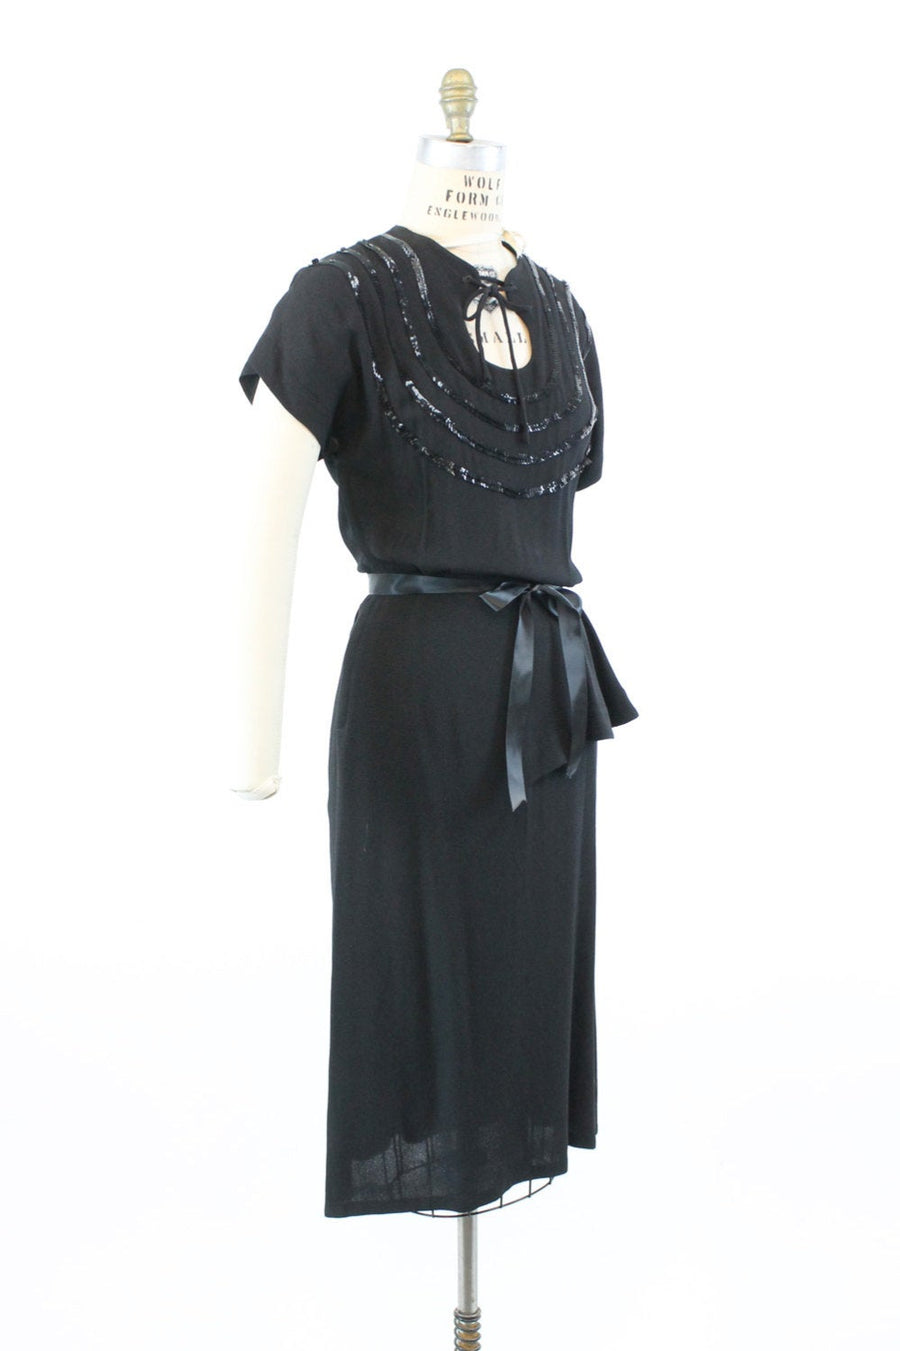 1940s sequins and rayon dress small | vintage keyhole opening tie dress | new in